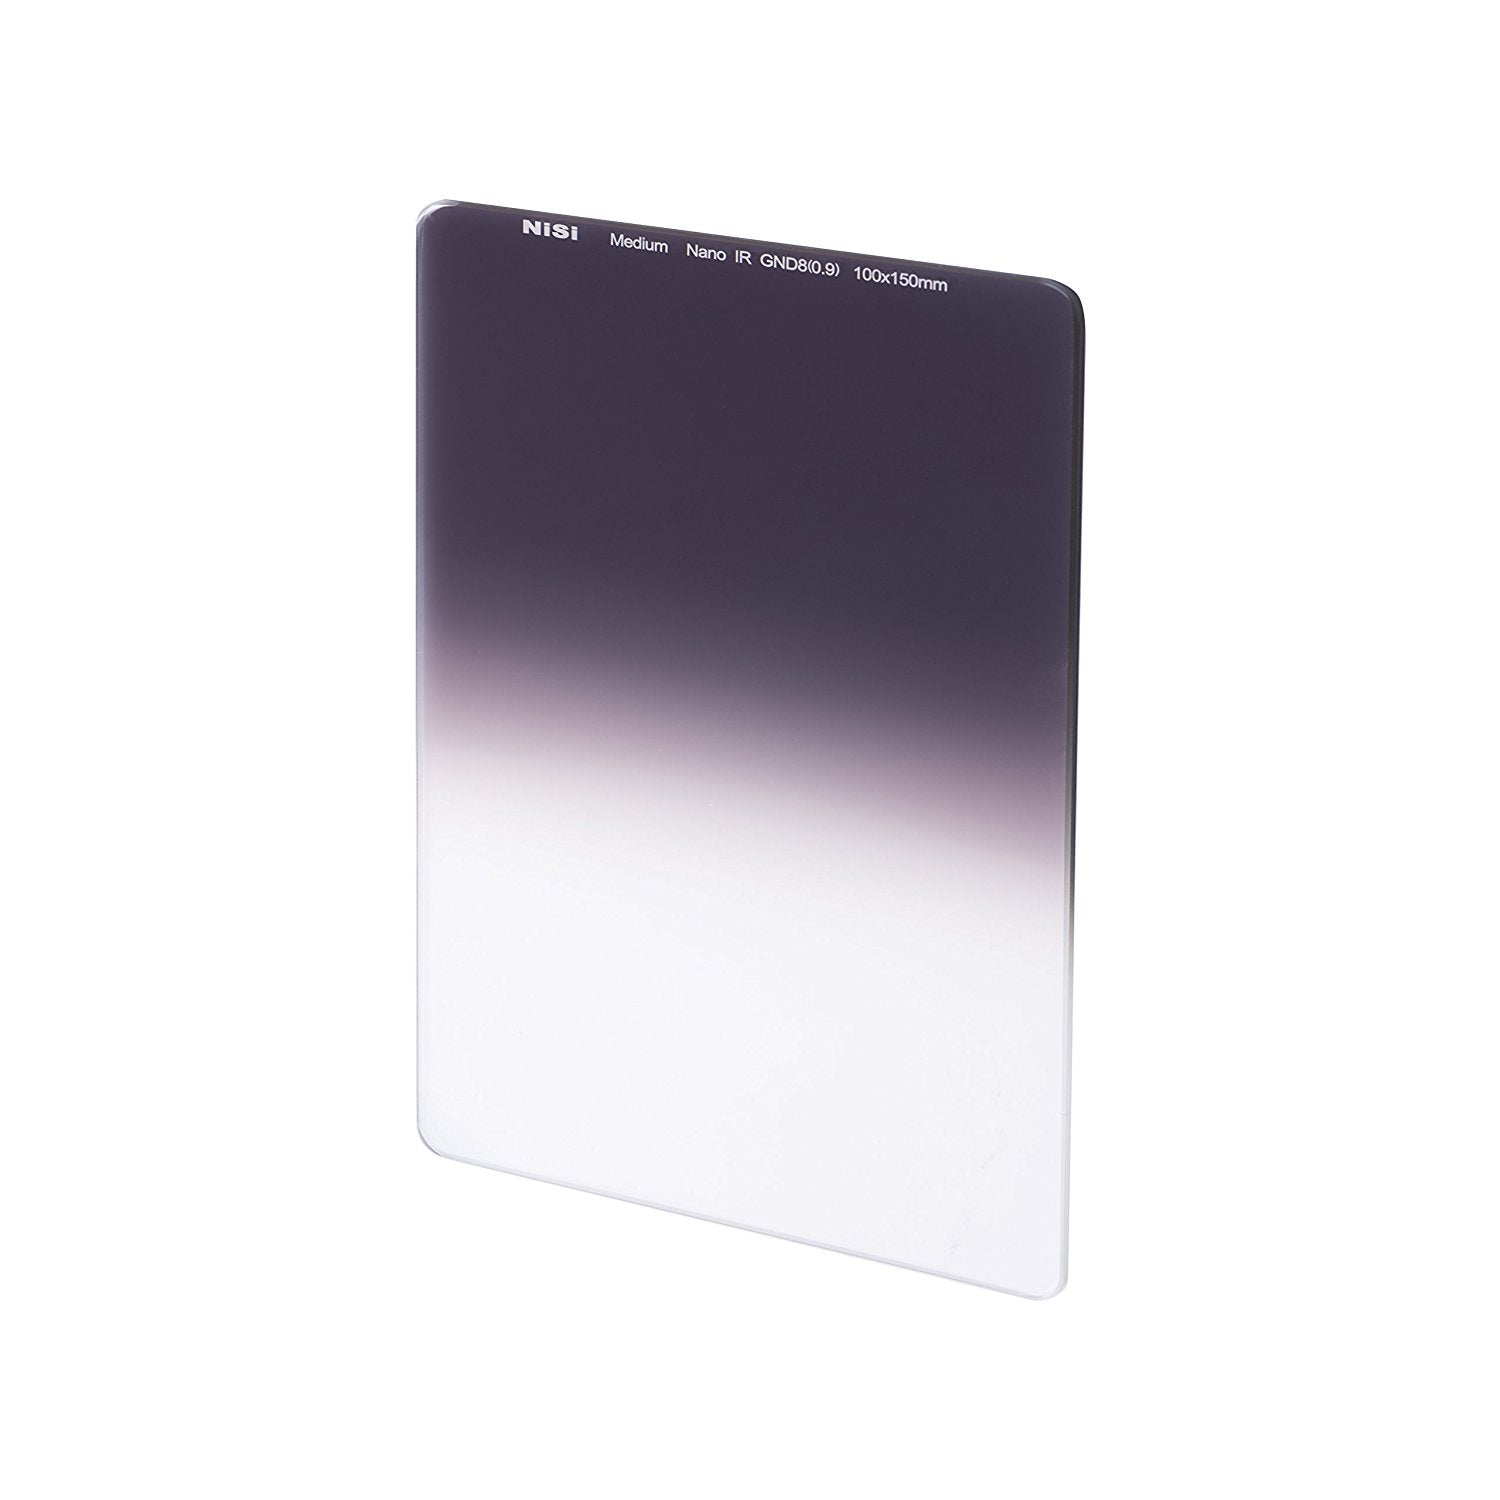 Nisi Medium Nano IR GND Graduated Neutral Density Filter – ND8 (0.9) – 3 Stop 100x150mm